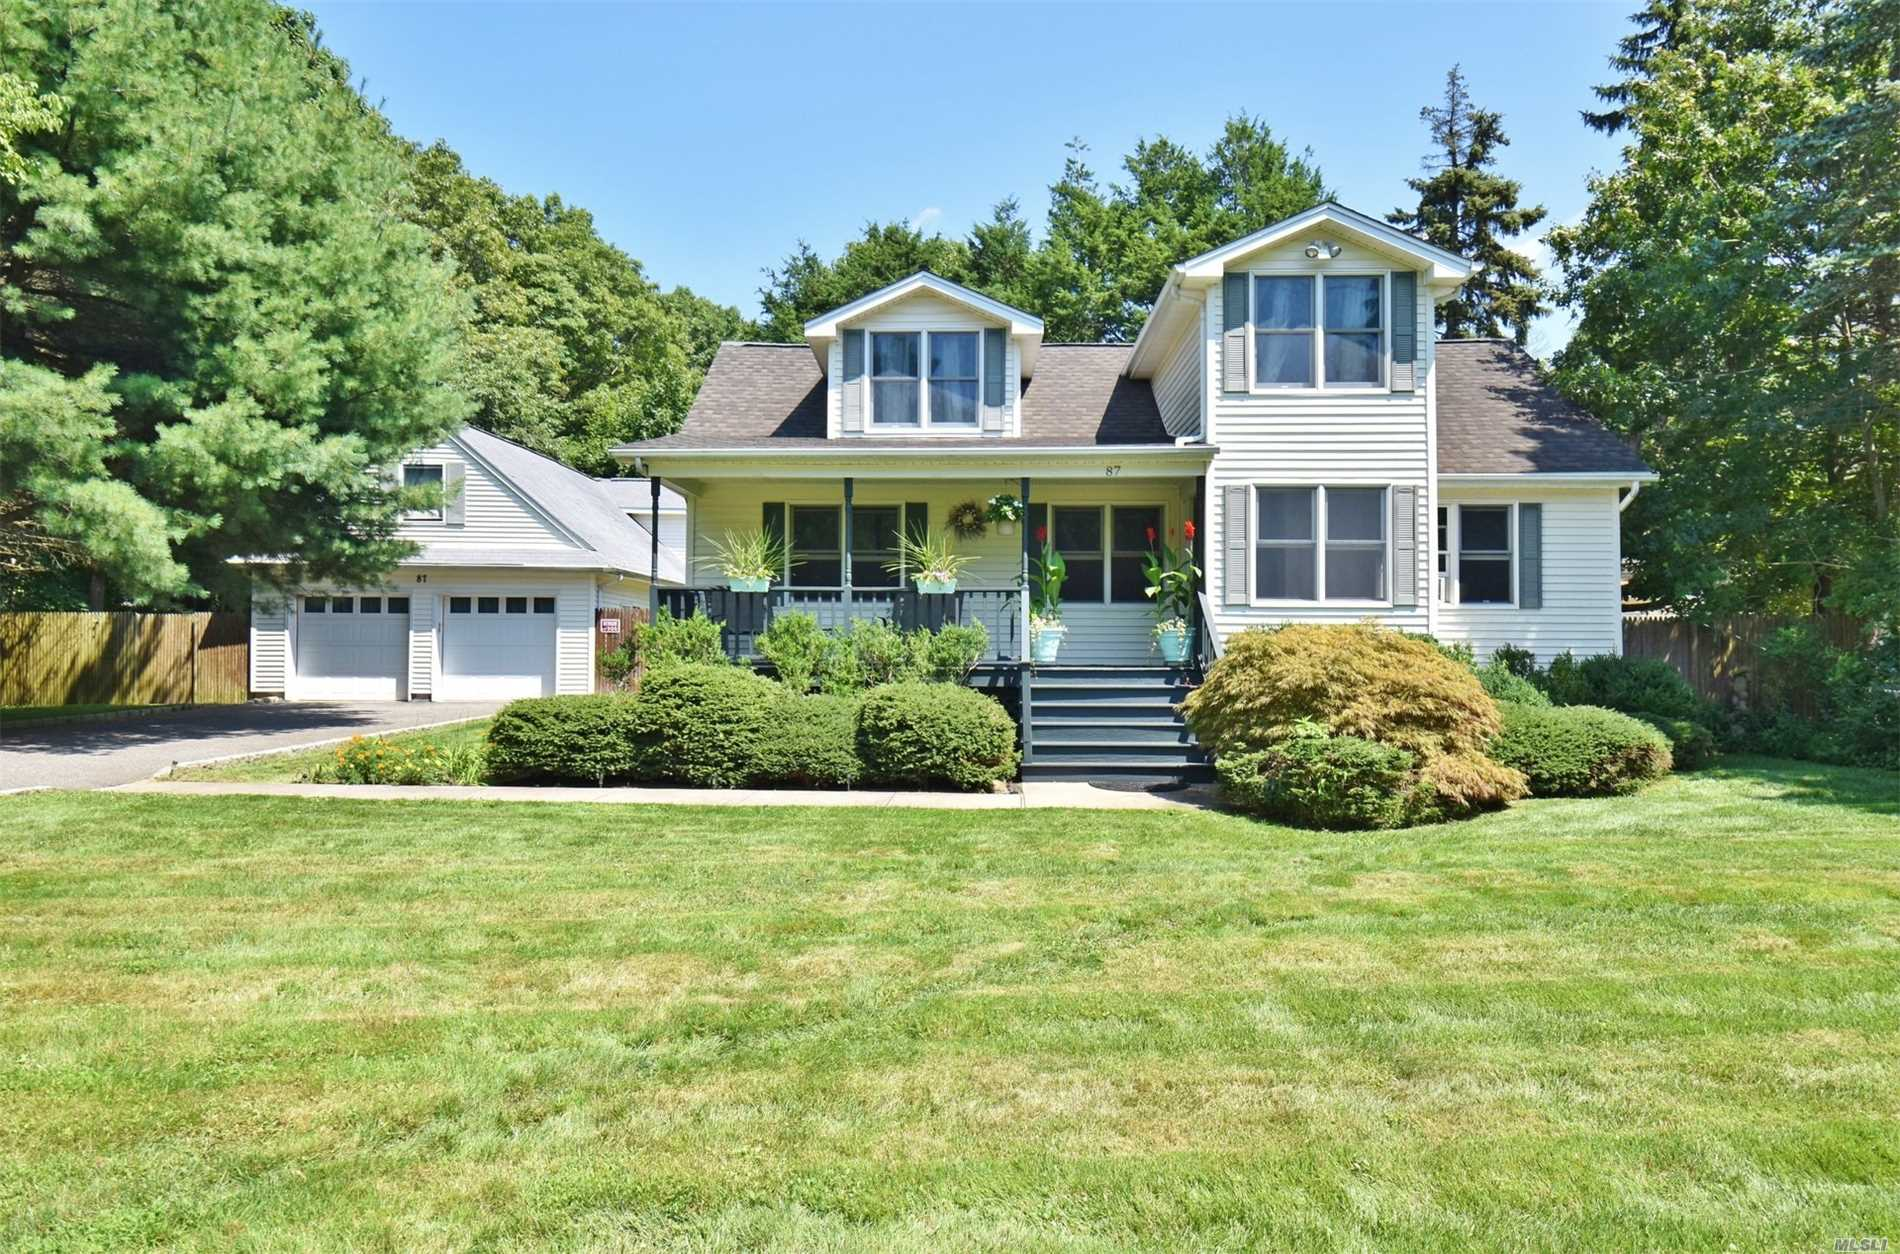 87 Daly Rd - E. Northport, New York